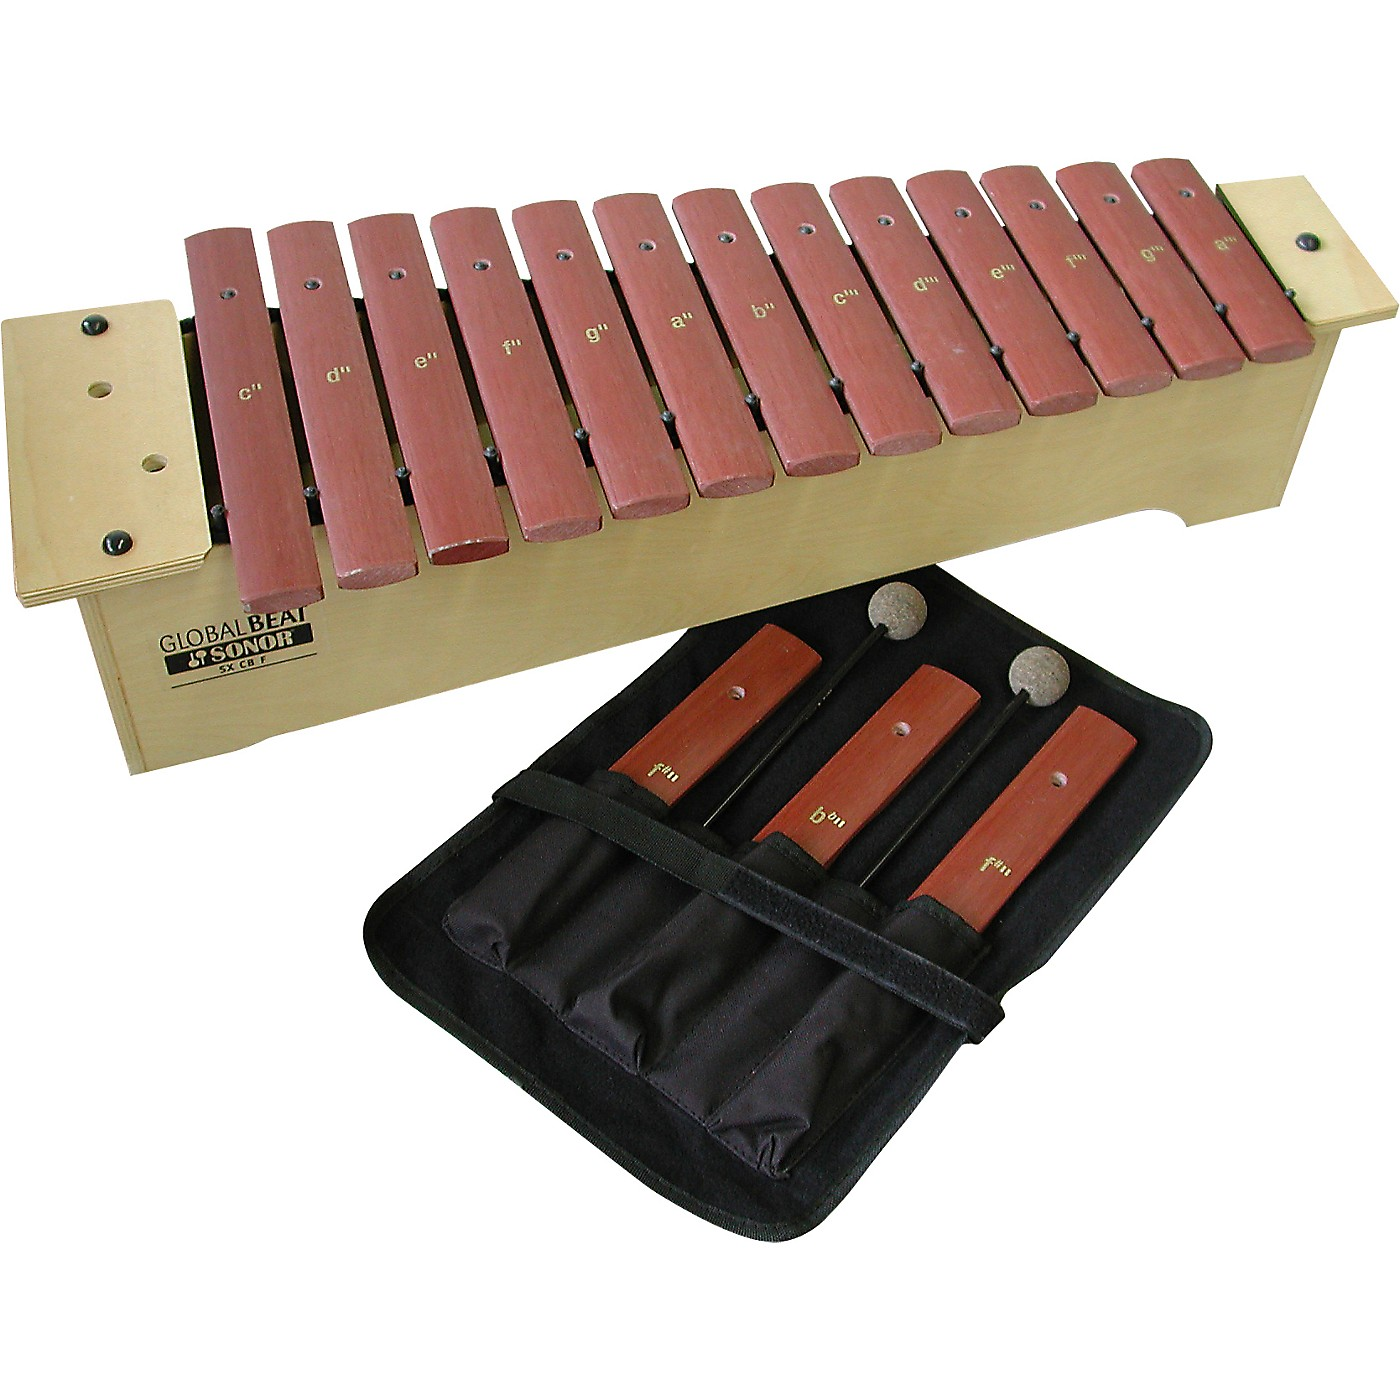 Sonor Orff Global Beat Soprano Xylophone with Fiberglass Bars thumbnail